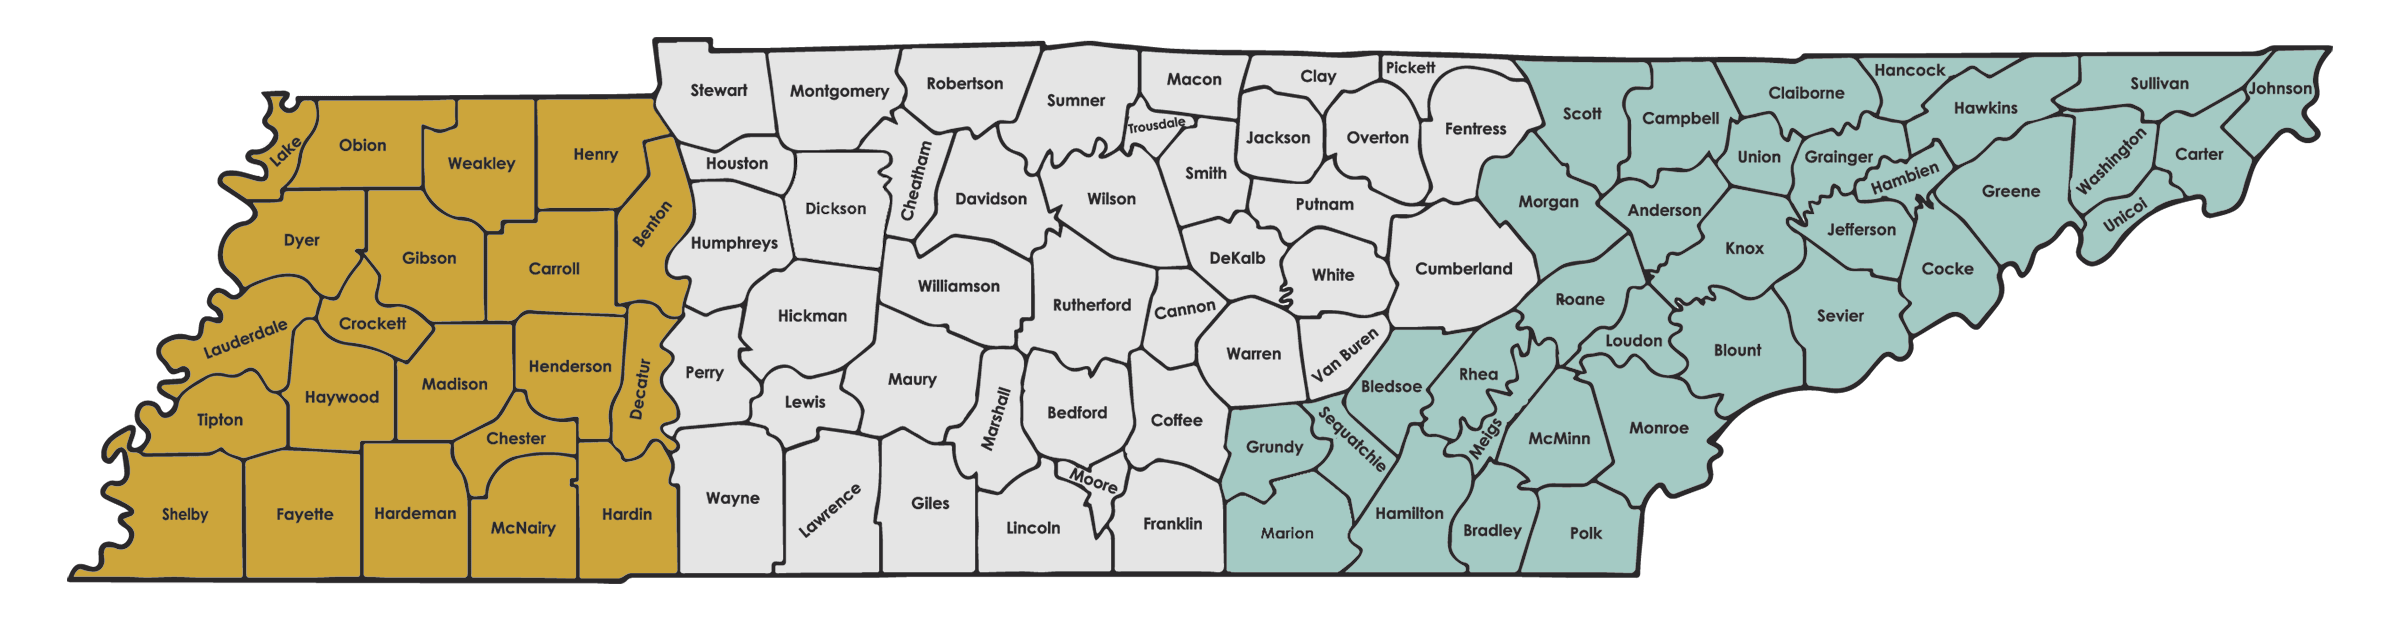 tennesseecounties-2400x622.png